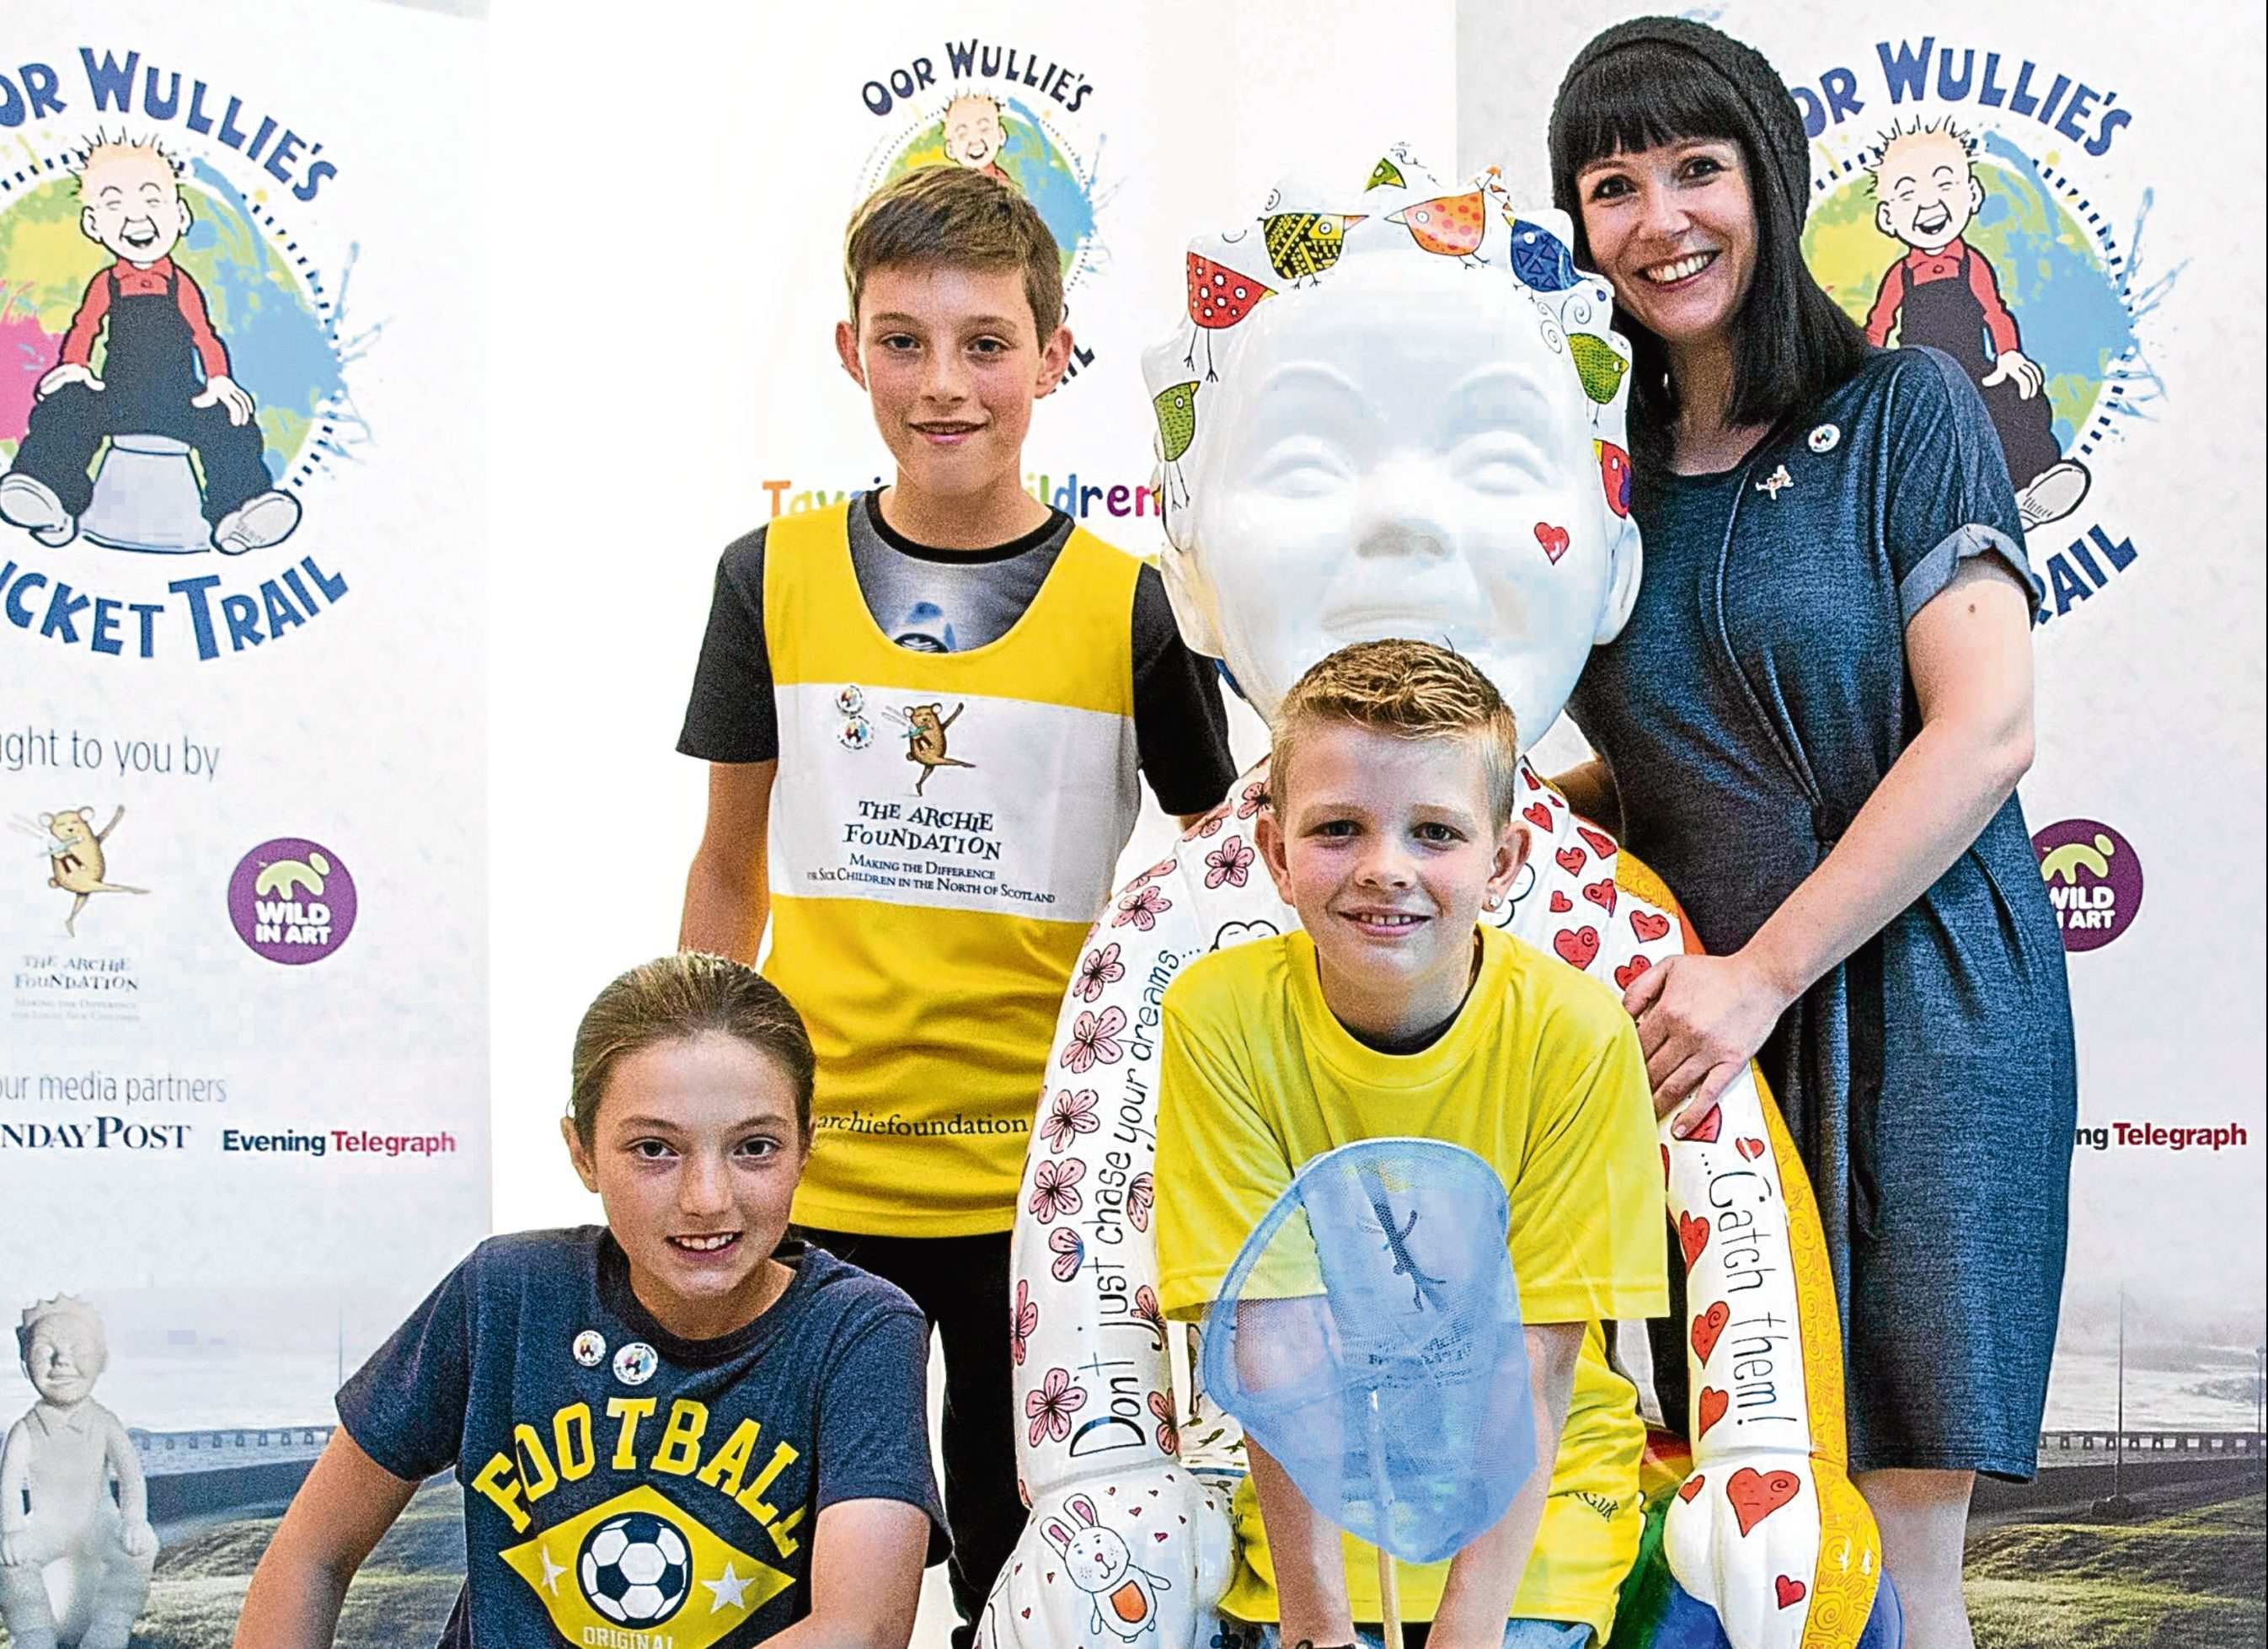 Suzanne Scott with Charlotte Taylor, Alfie Taylor, and Brandyn Bowie and the Dreamcatcher Wullie